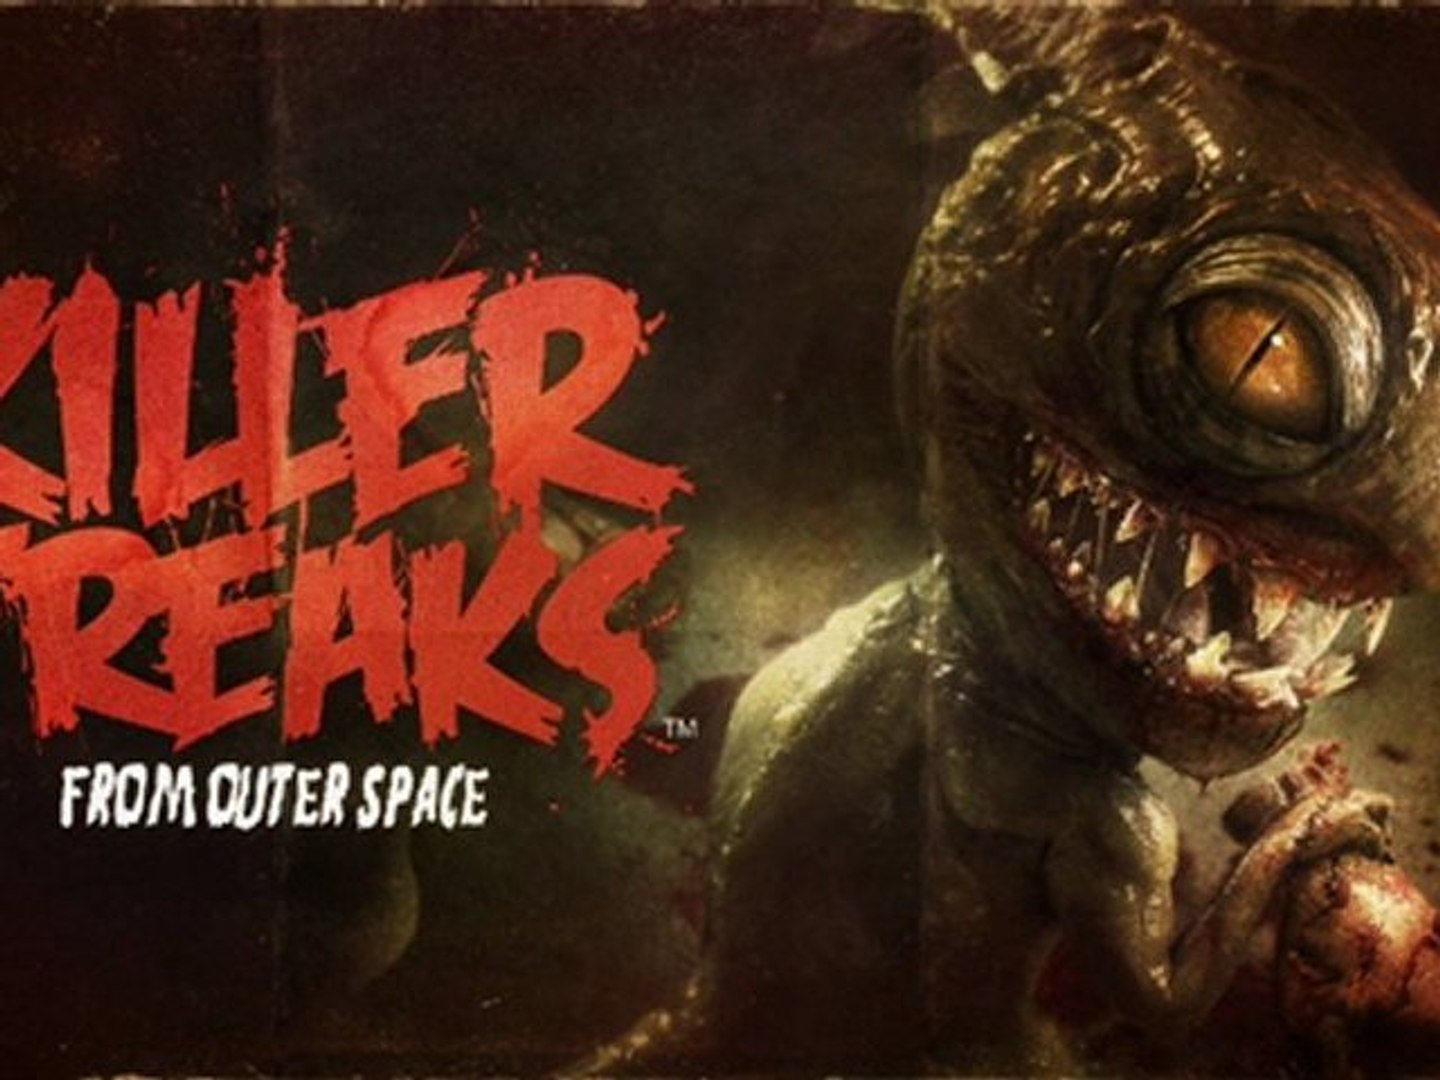 Killer Freaks From Outer Space (Podcast #47)